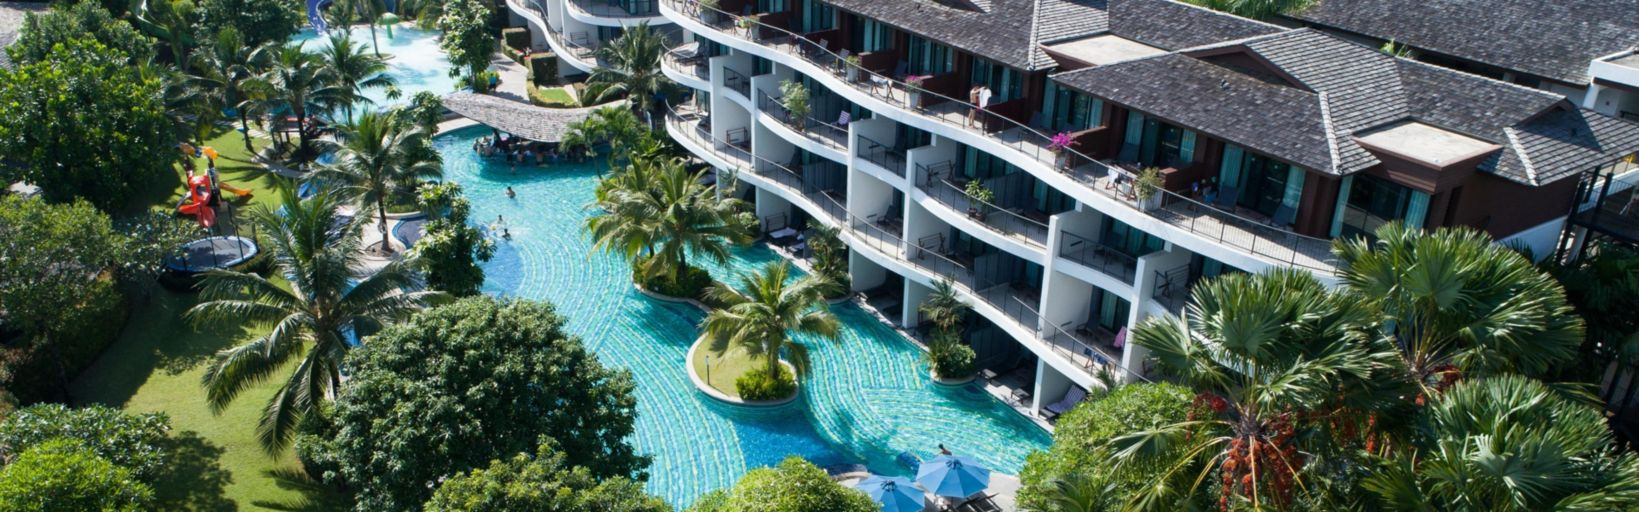 holiday-inn-resort-krabi-5069363479-16×5